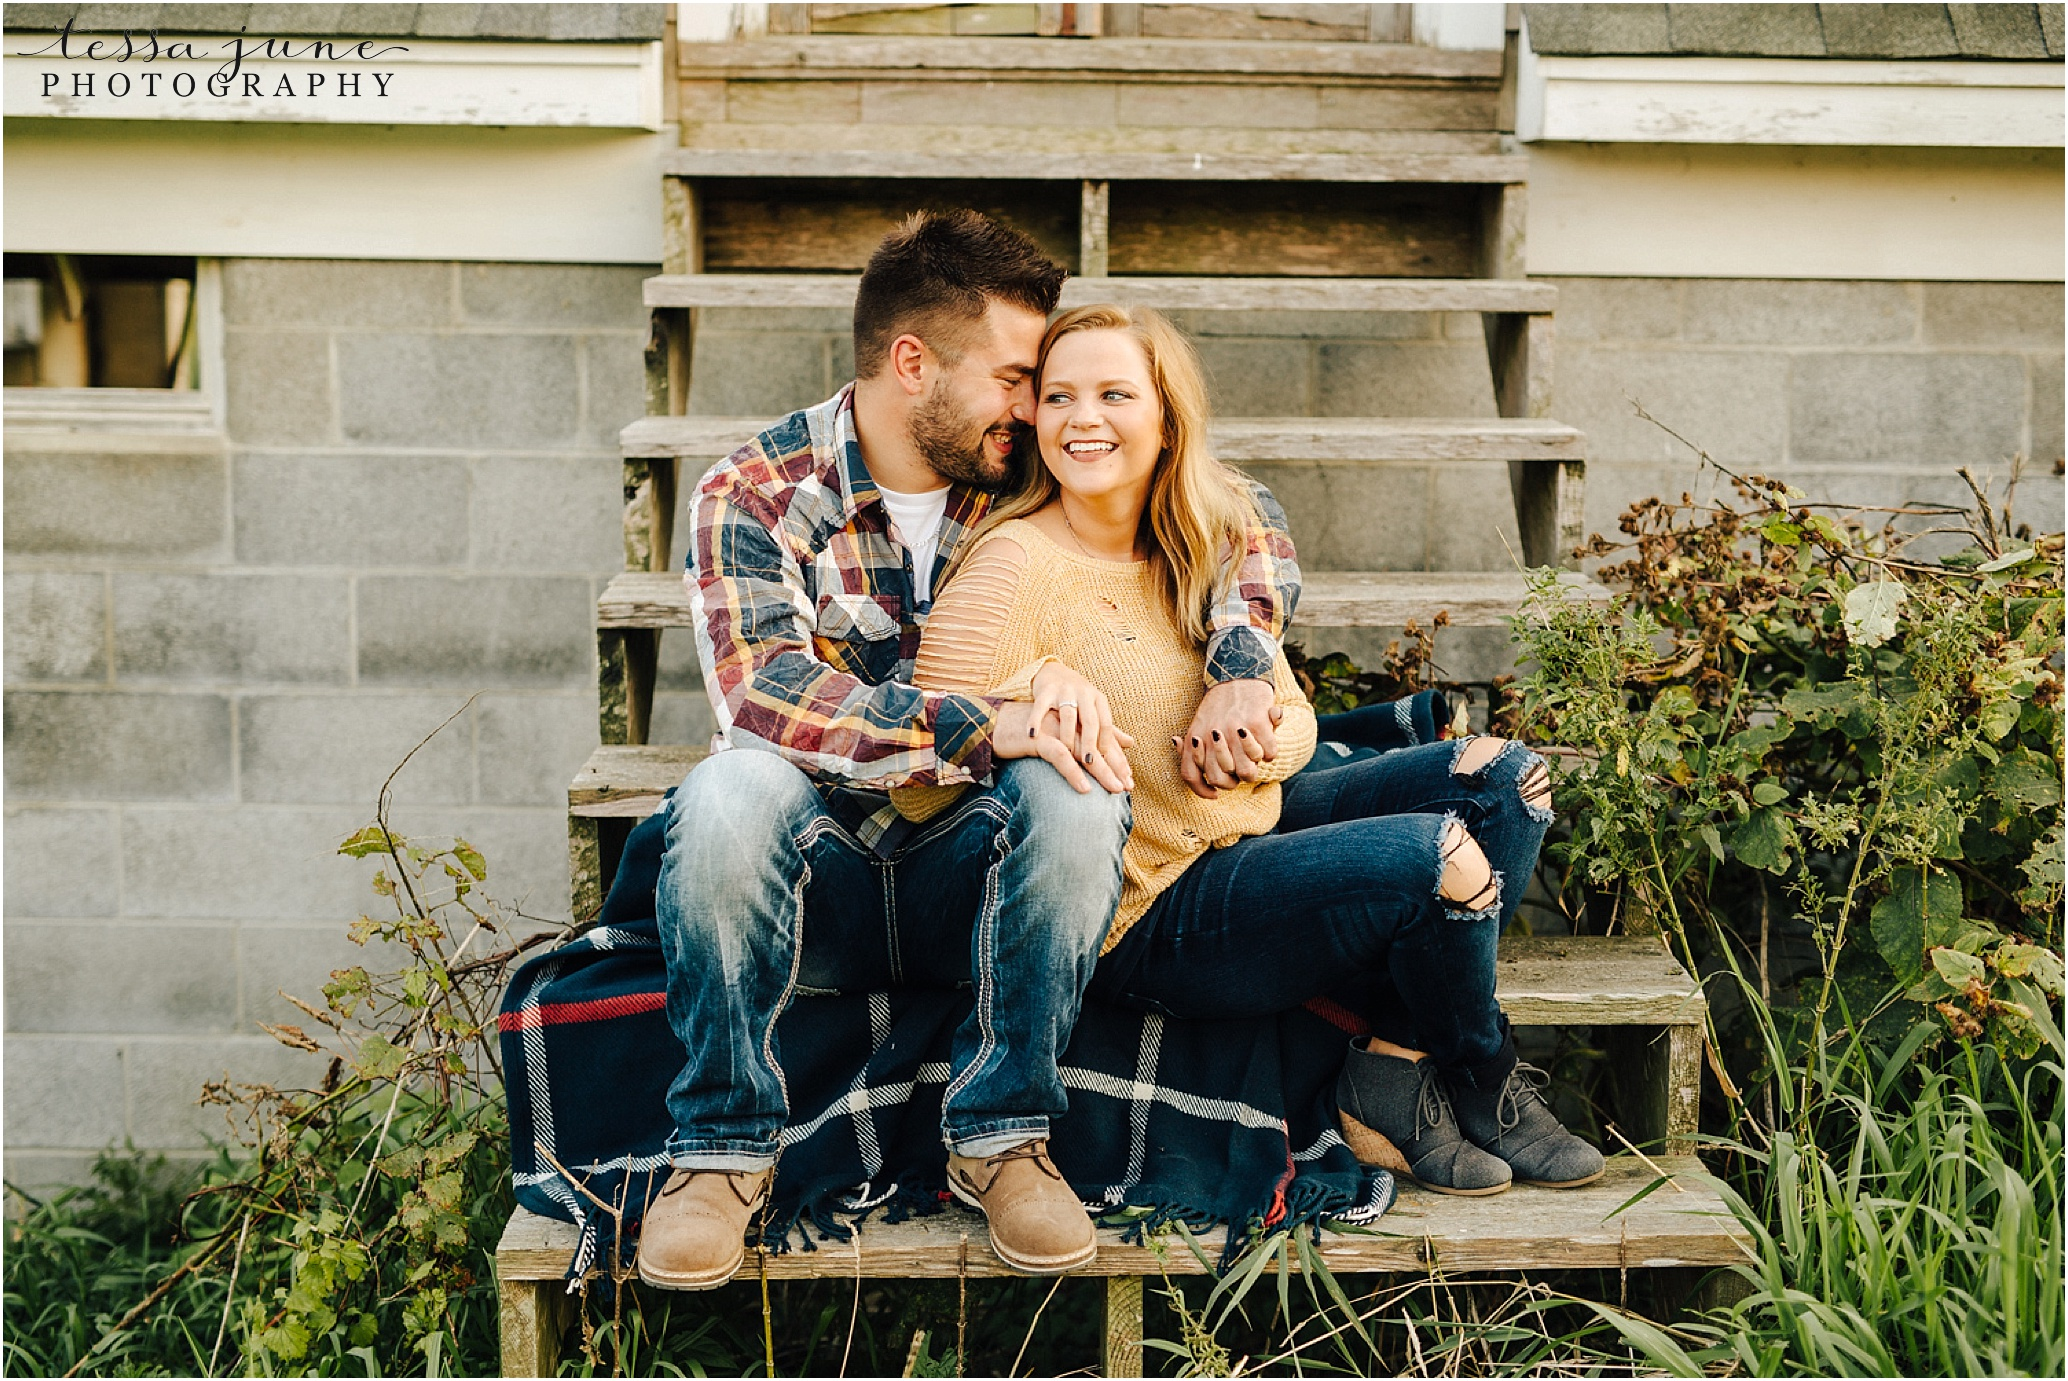 st-cloud-wedding-photographer-at-old-building